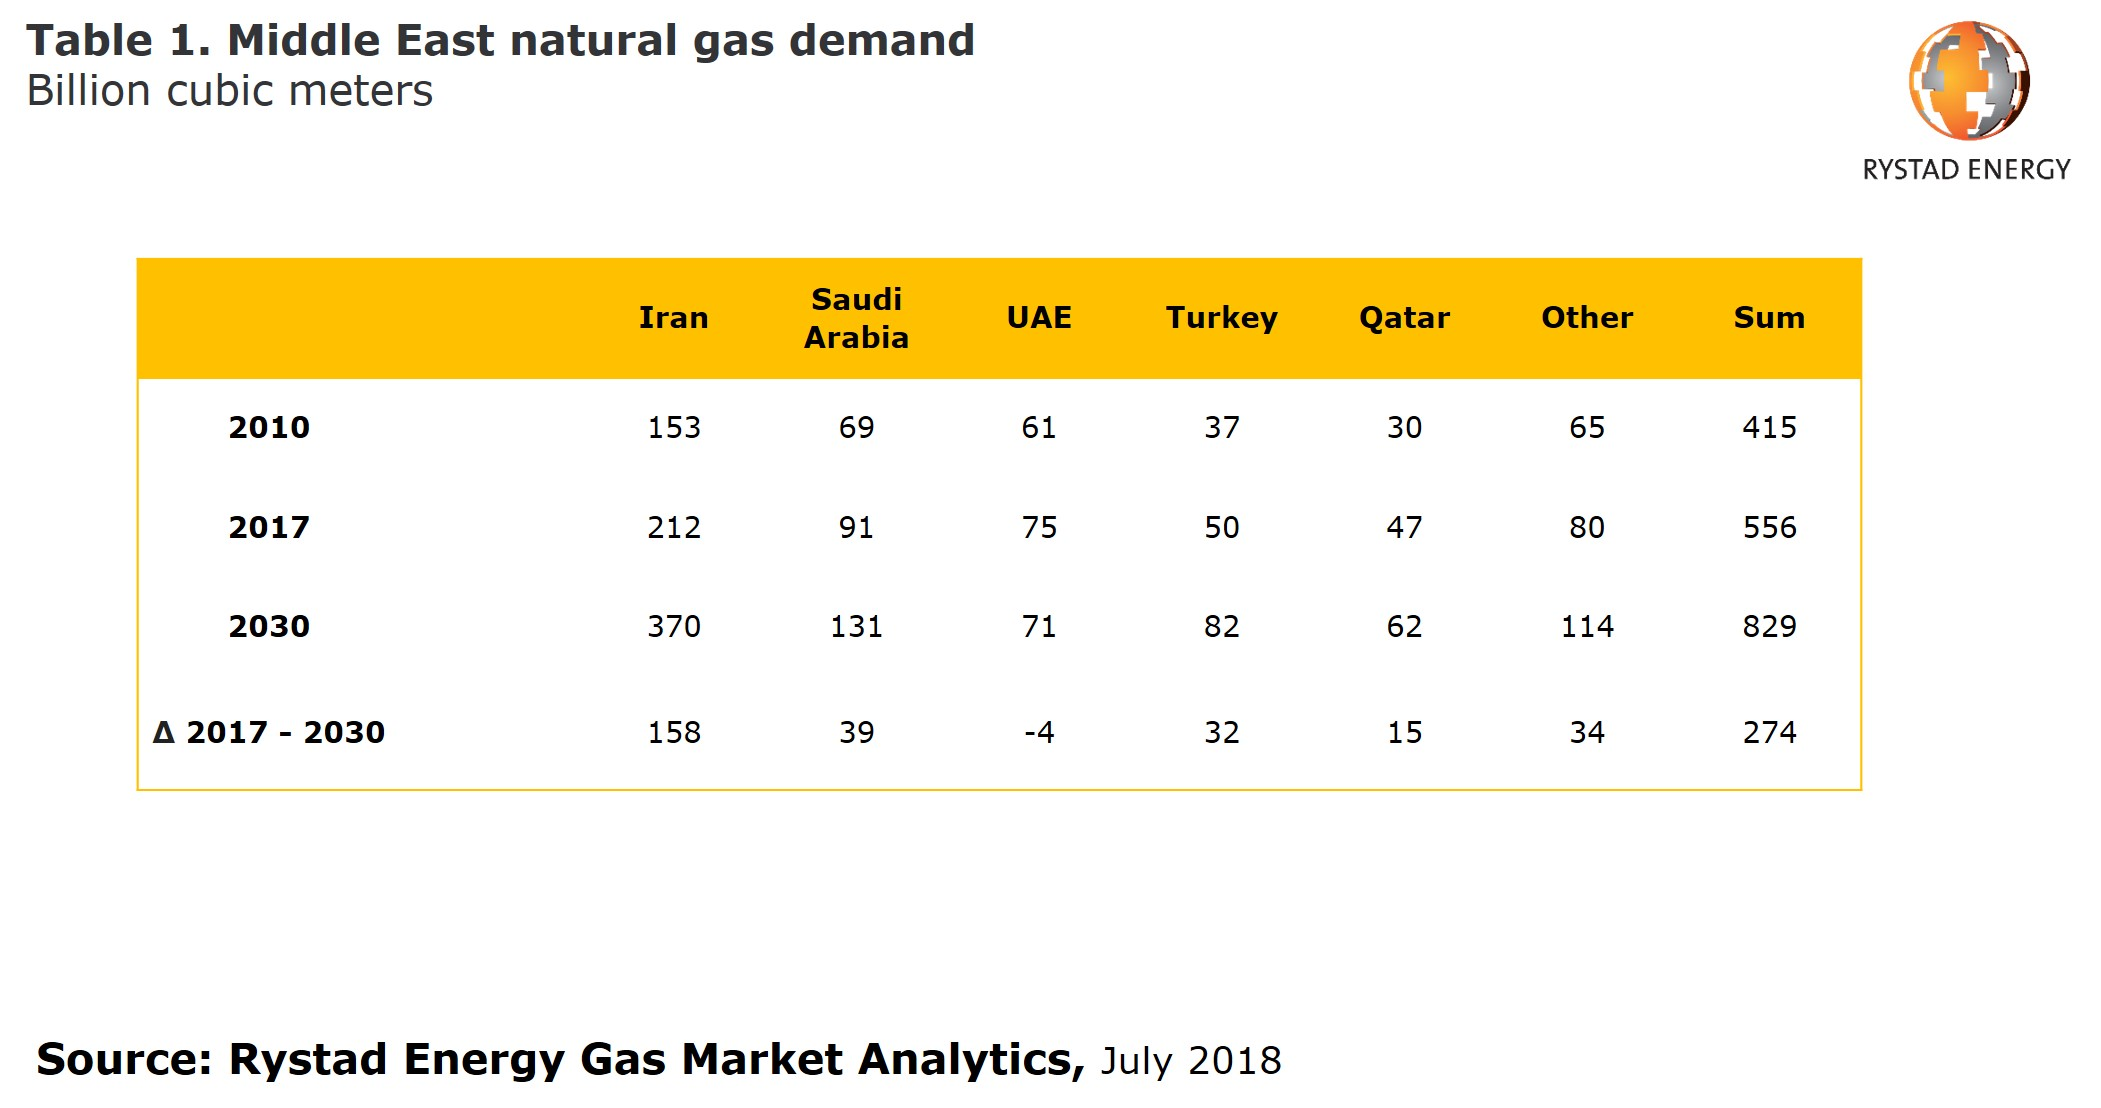 table 1: Showing Middle East natural gas demand in Billion cubic meters, Source: Rystad Energy Gas Market Analytics, July 2018